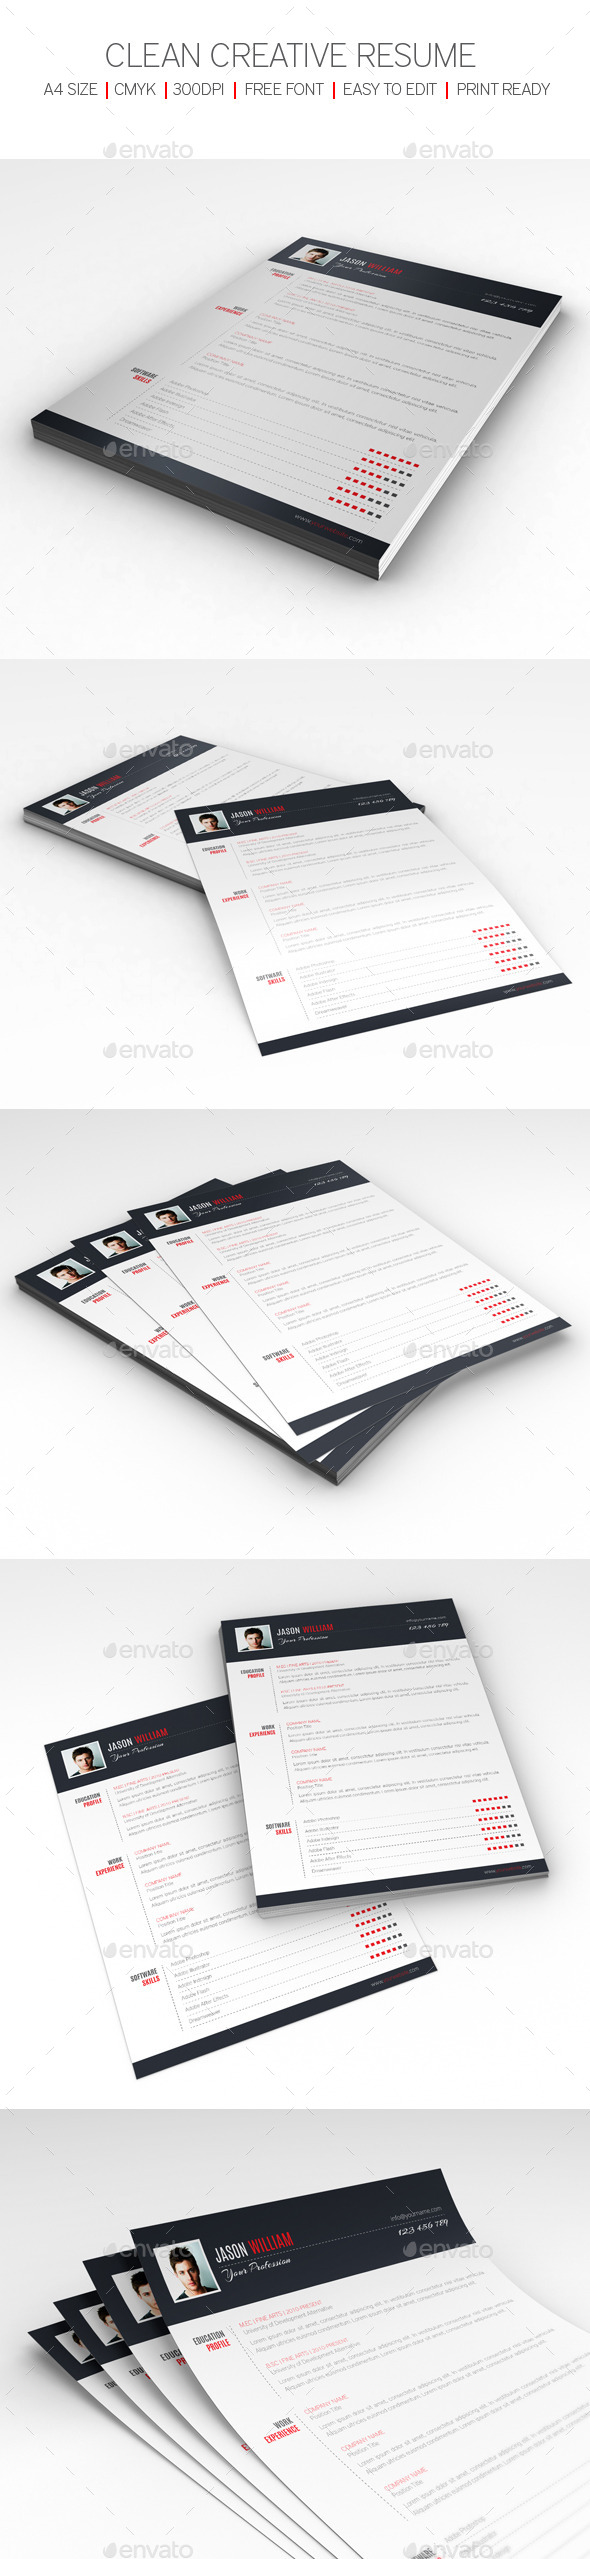 GraphicRiver Clean Creative Resume 9703002